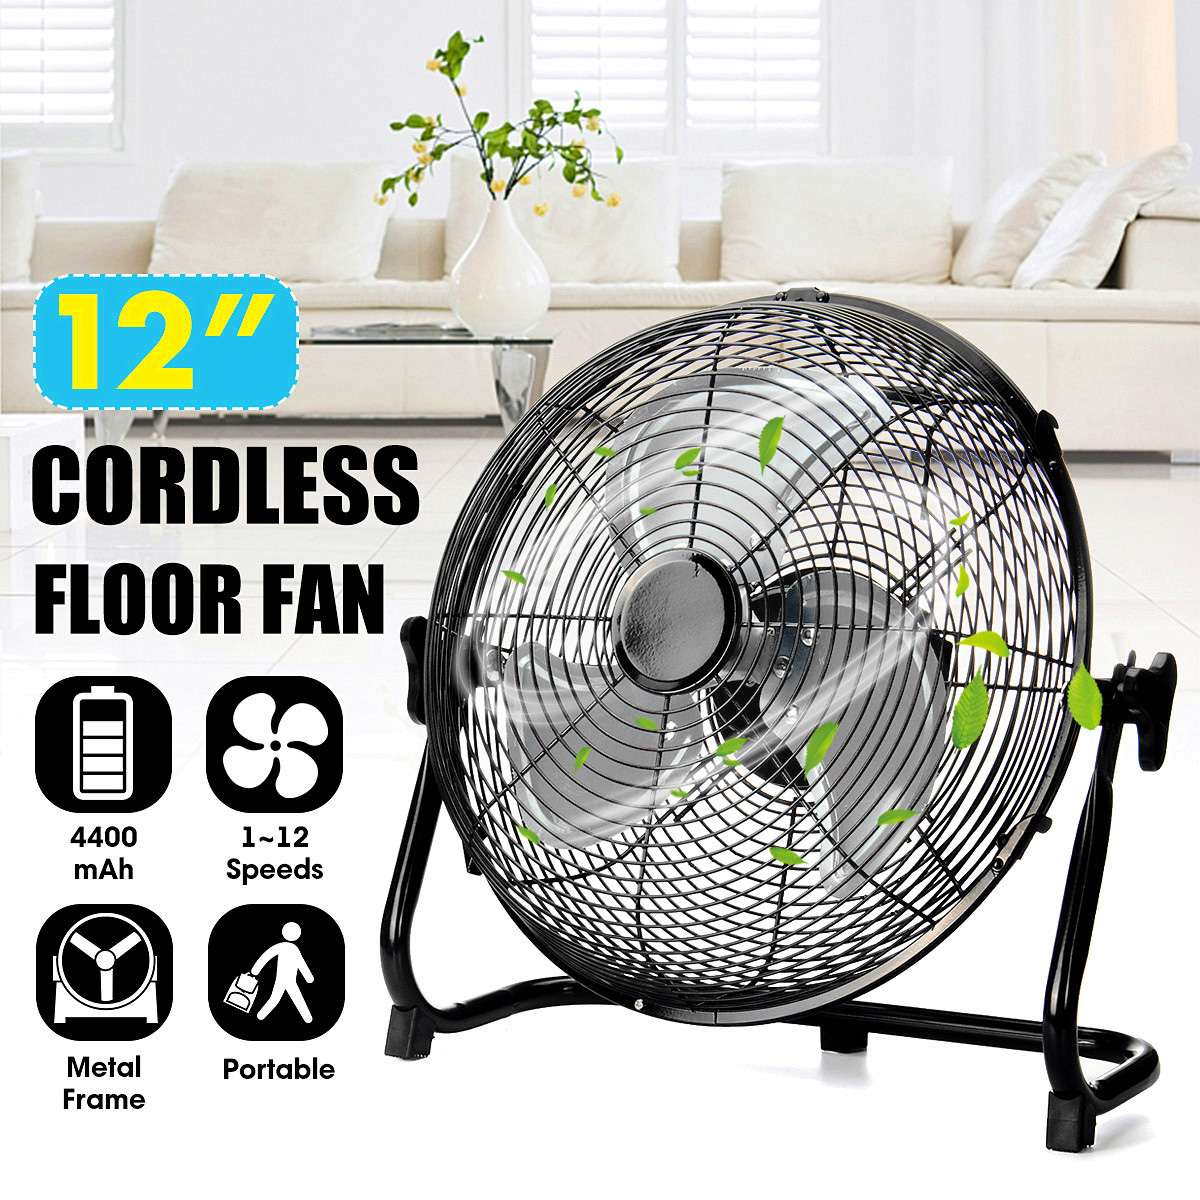 New Arrival 2019 12 Inch Portable Brushless Fan Household 12V Handle Air Cooling Floor Fan Cooler 12 Speed Level for Office Home